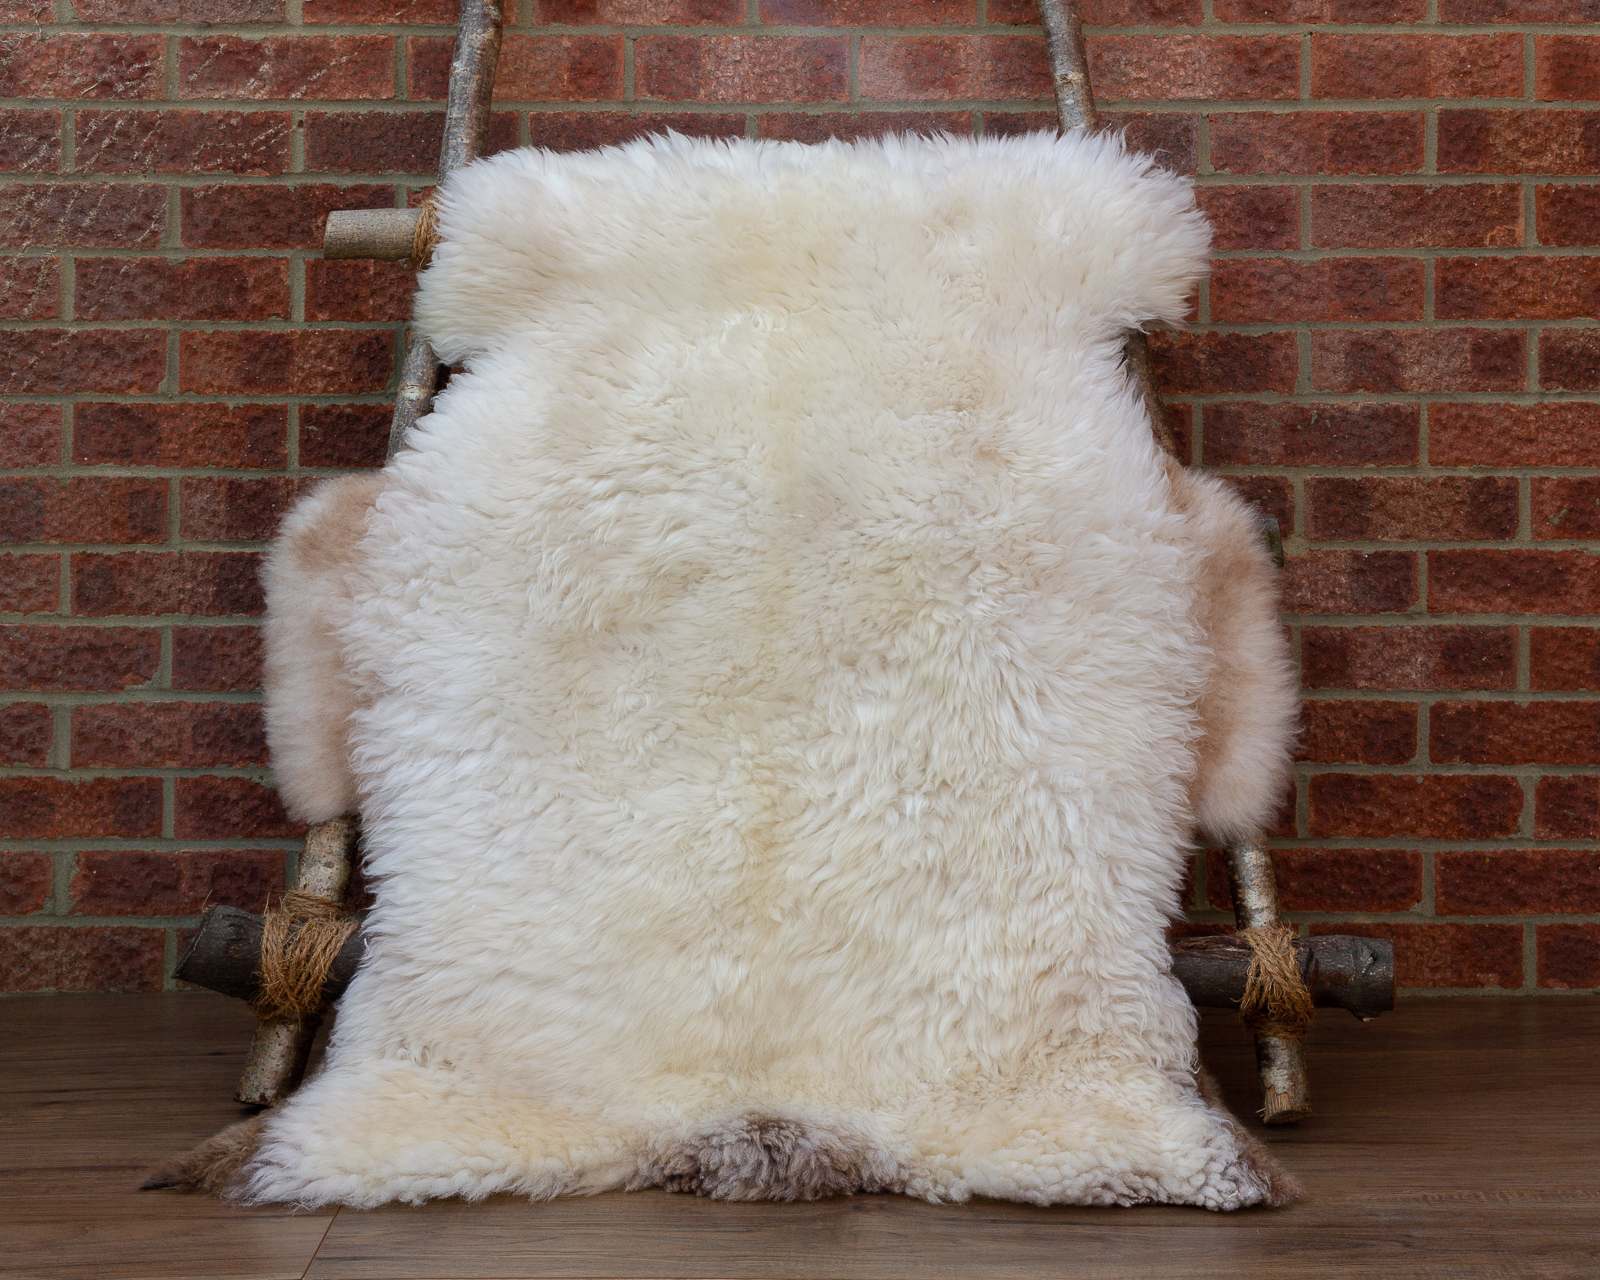 Cream with brown patches sheepskin rug